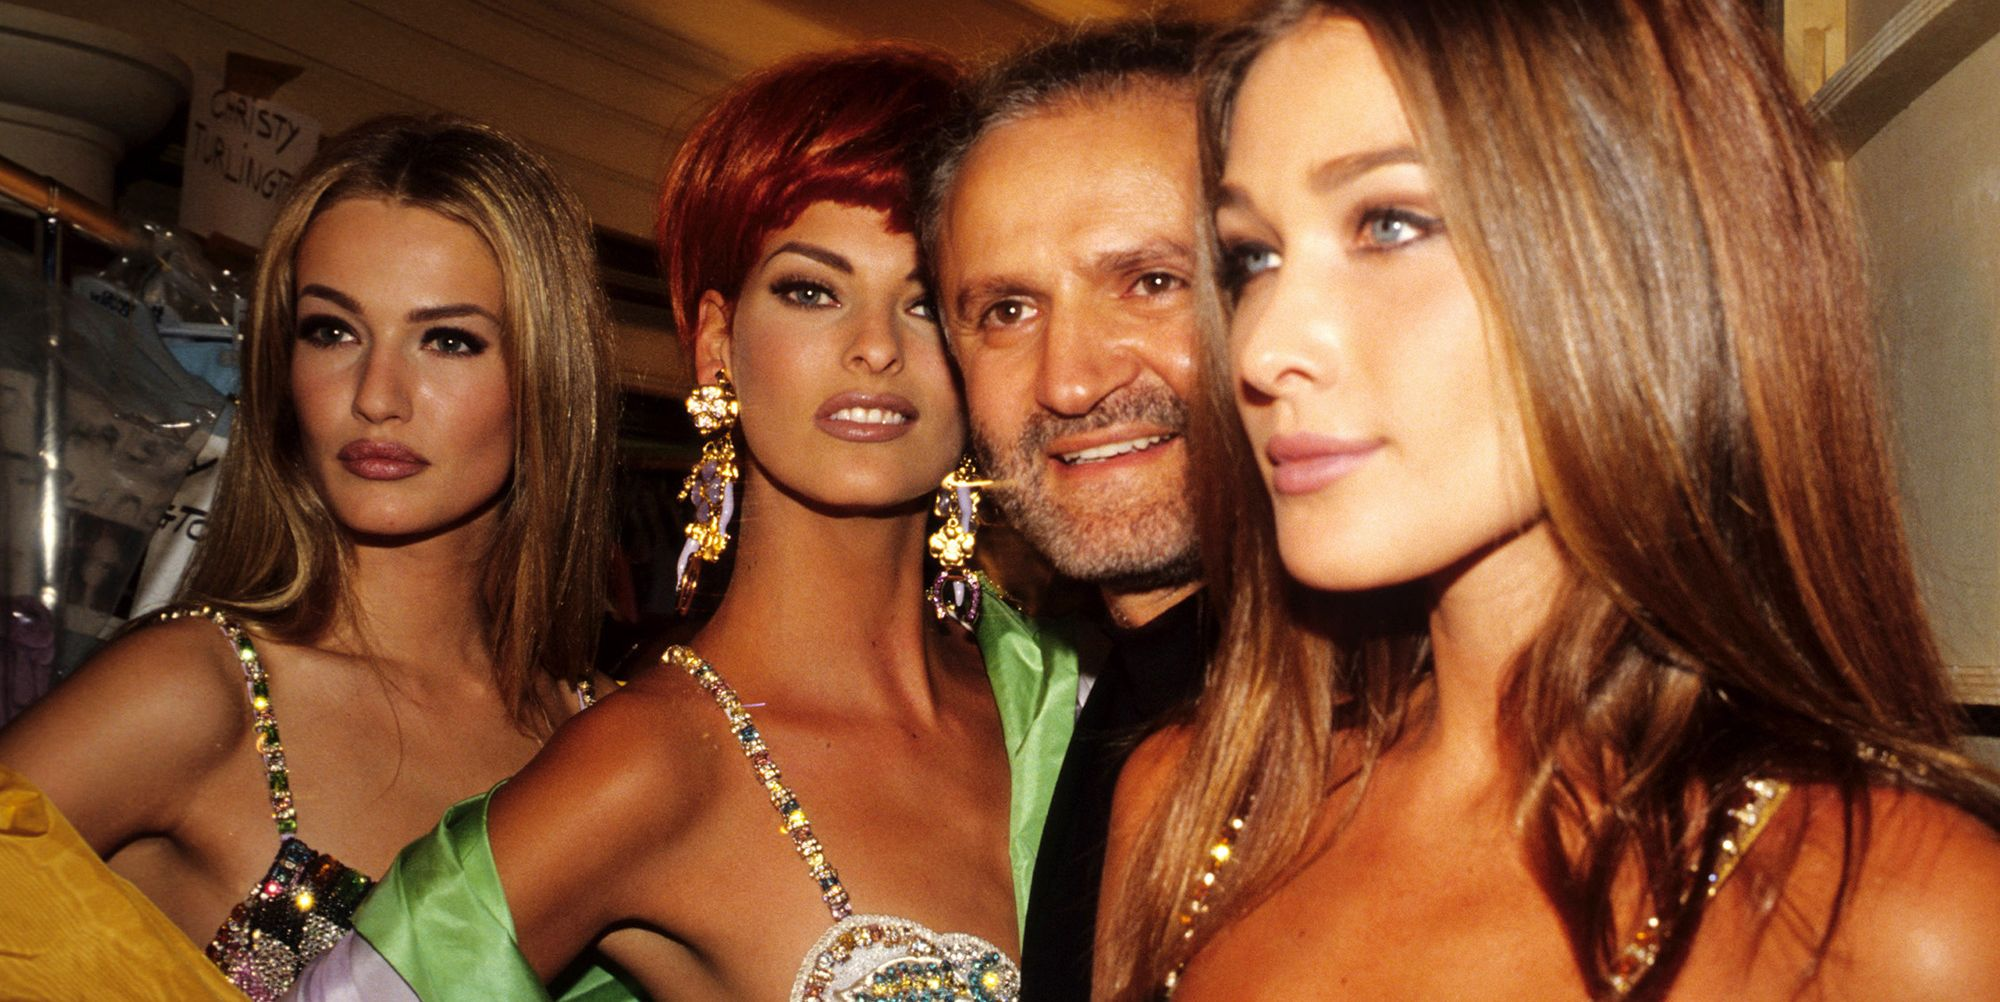 The True Story of Gianni Versace's Murder